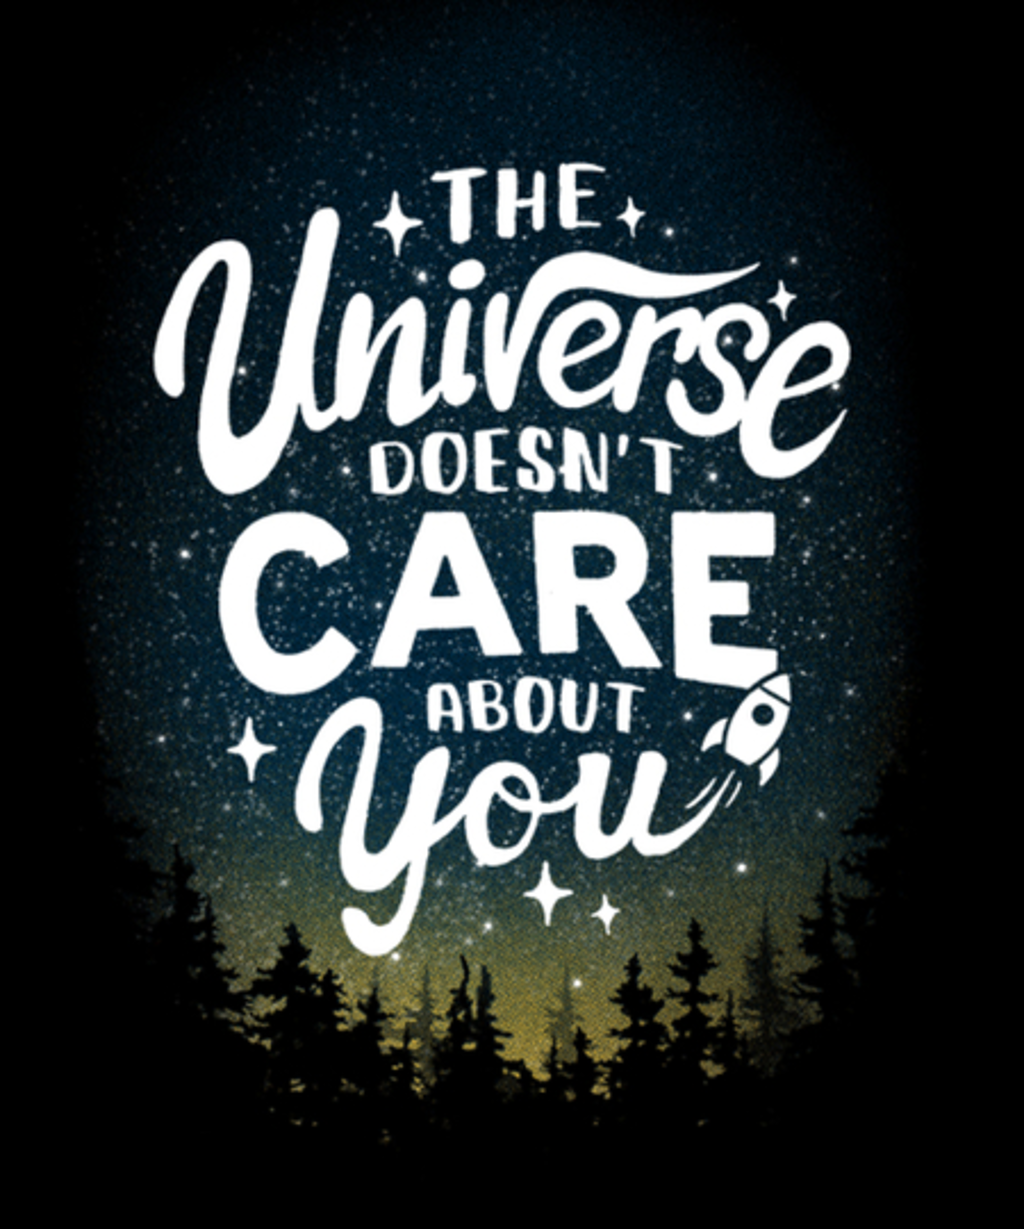 Qwertee: The universe...